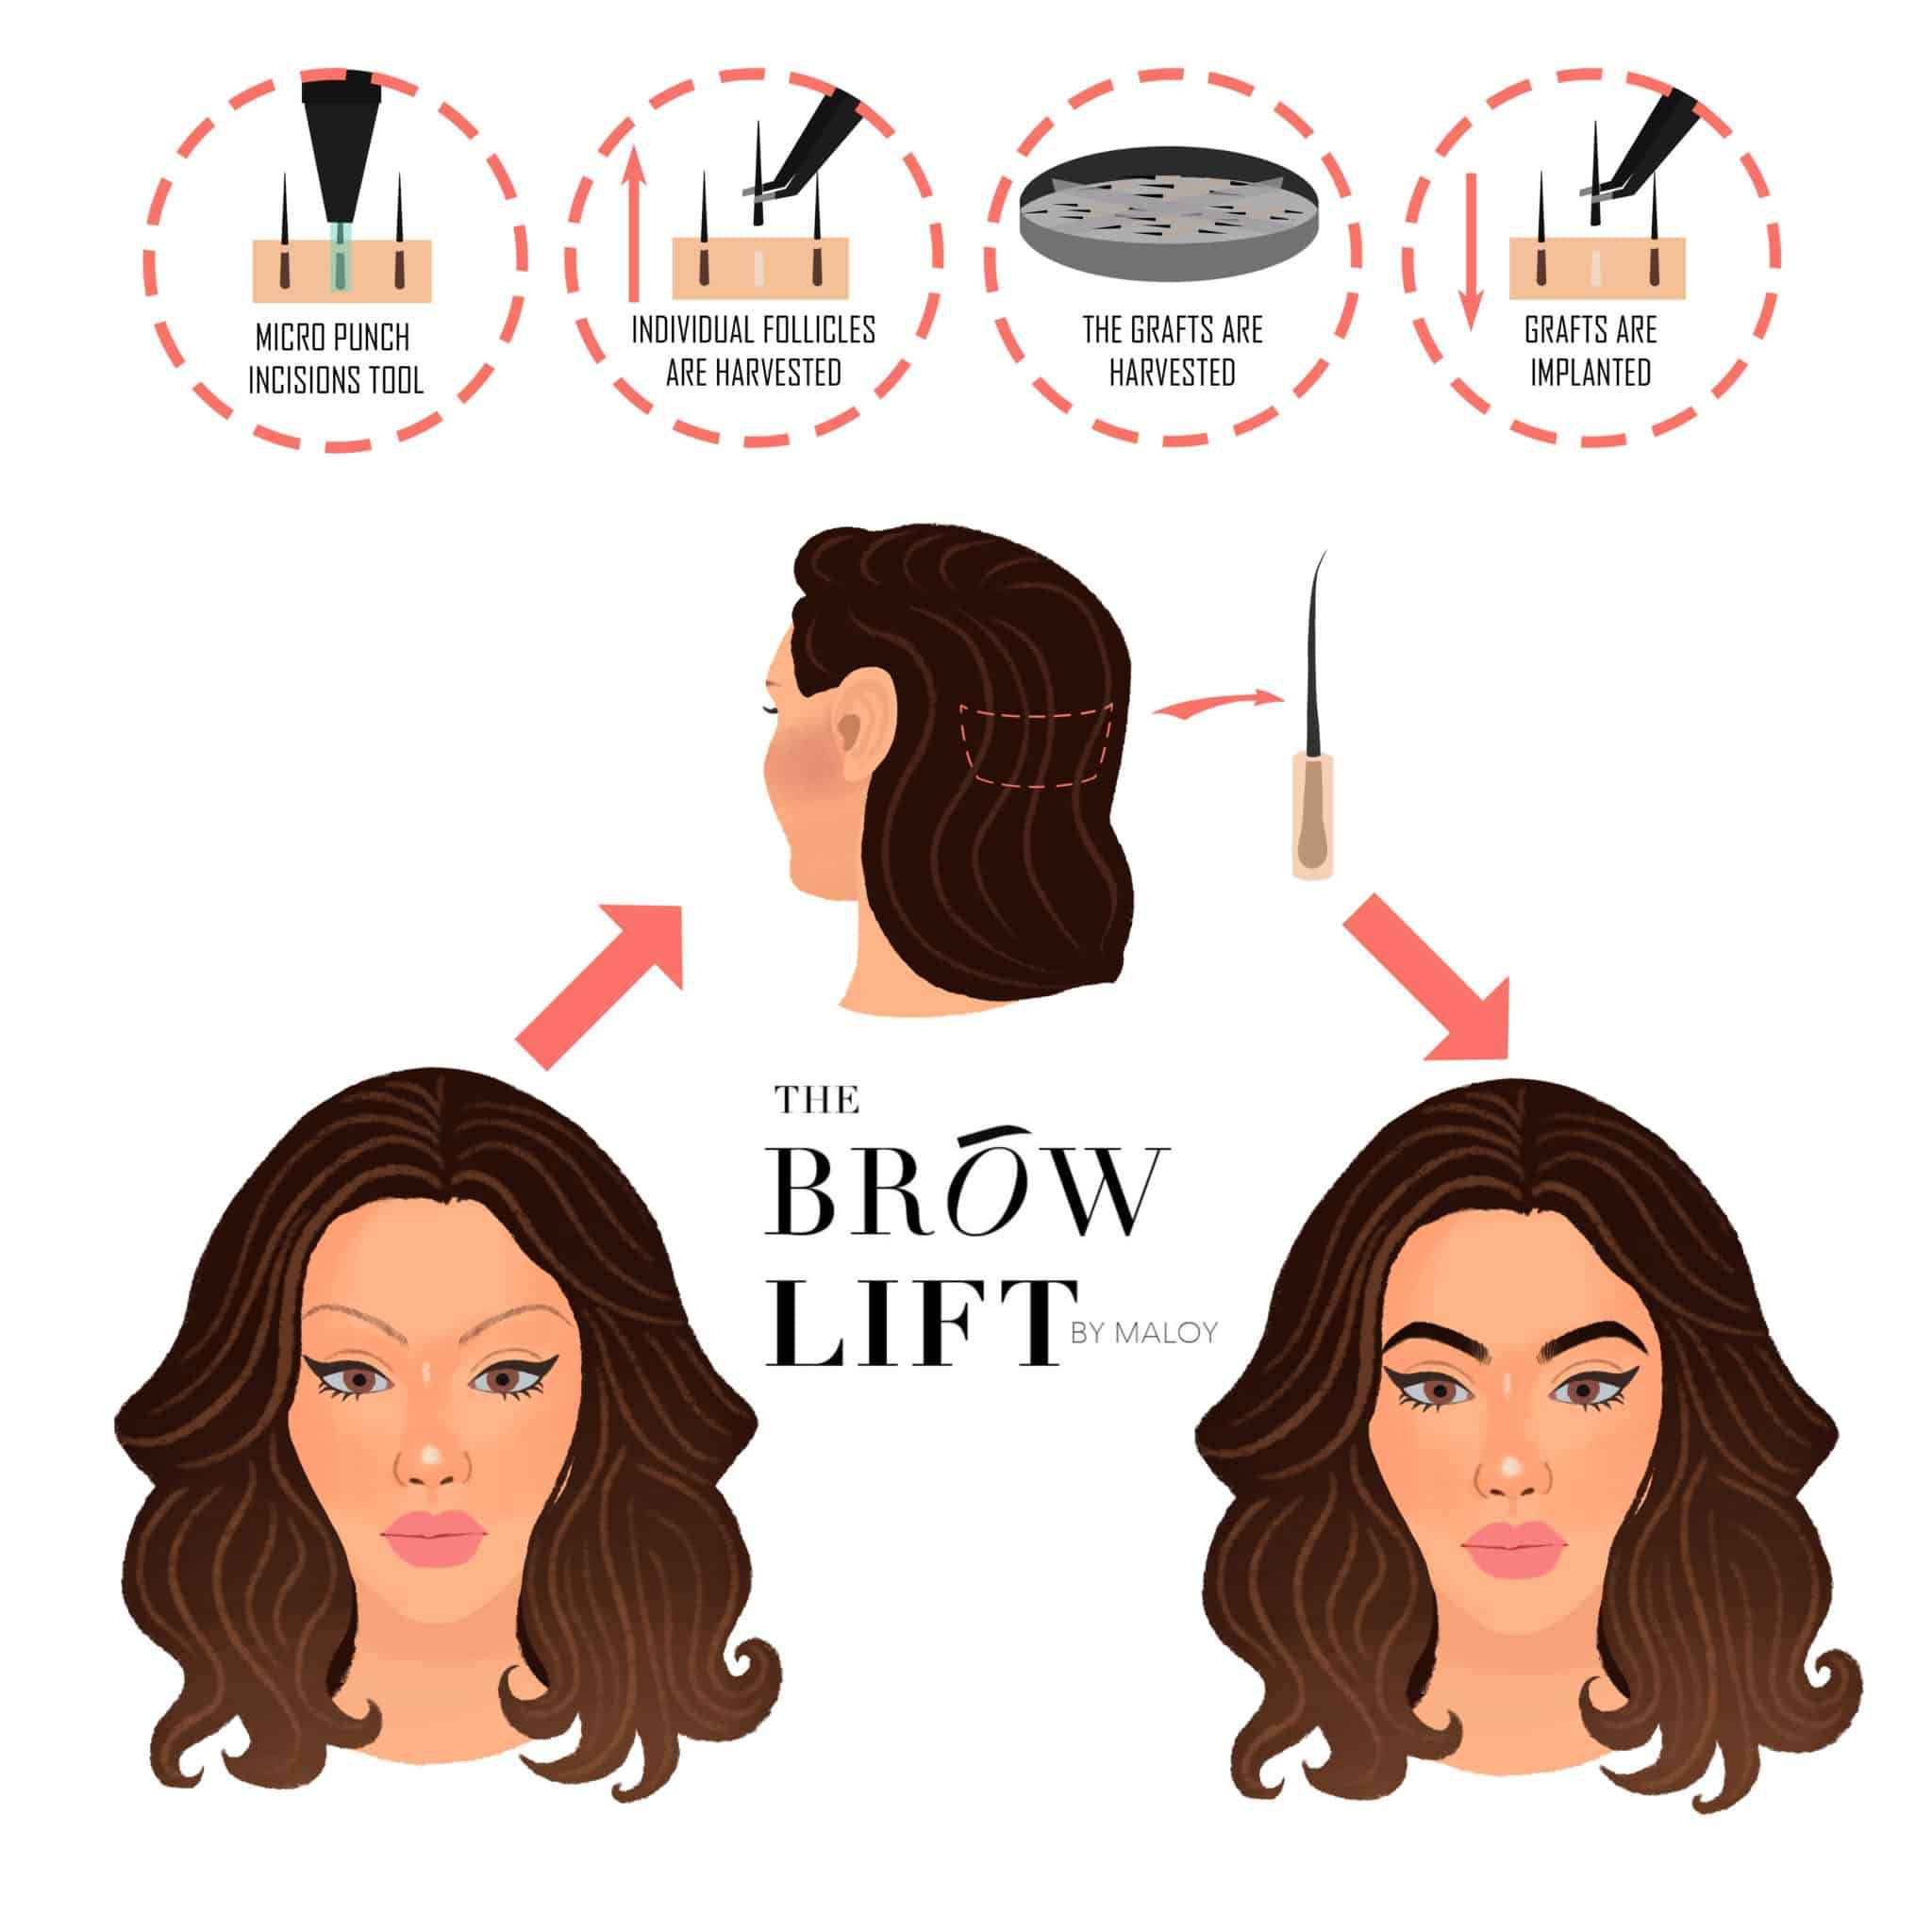 brow lift by Maloy, Brow lift by Maloy, Holborn Hair & Scalp Clinic